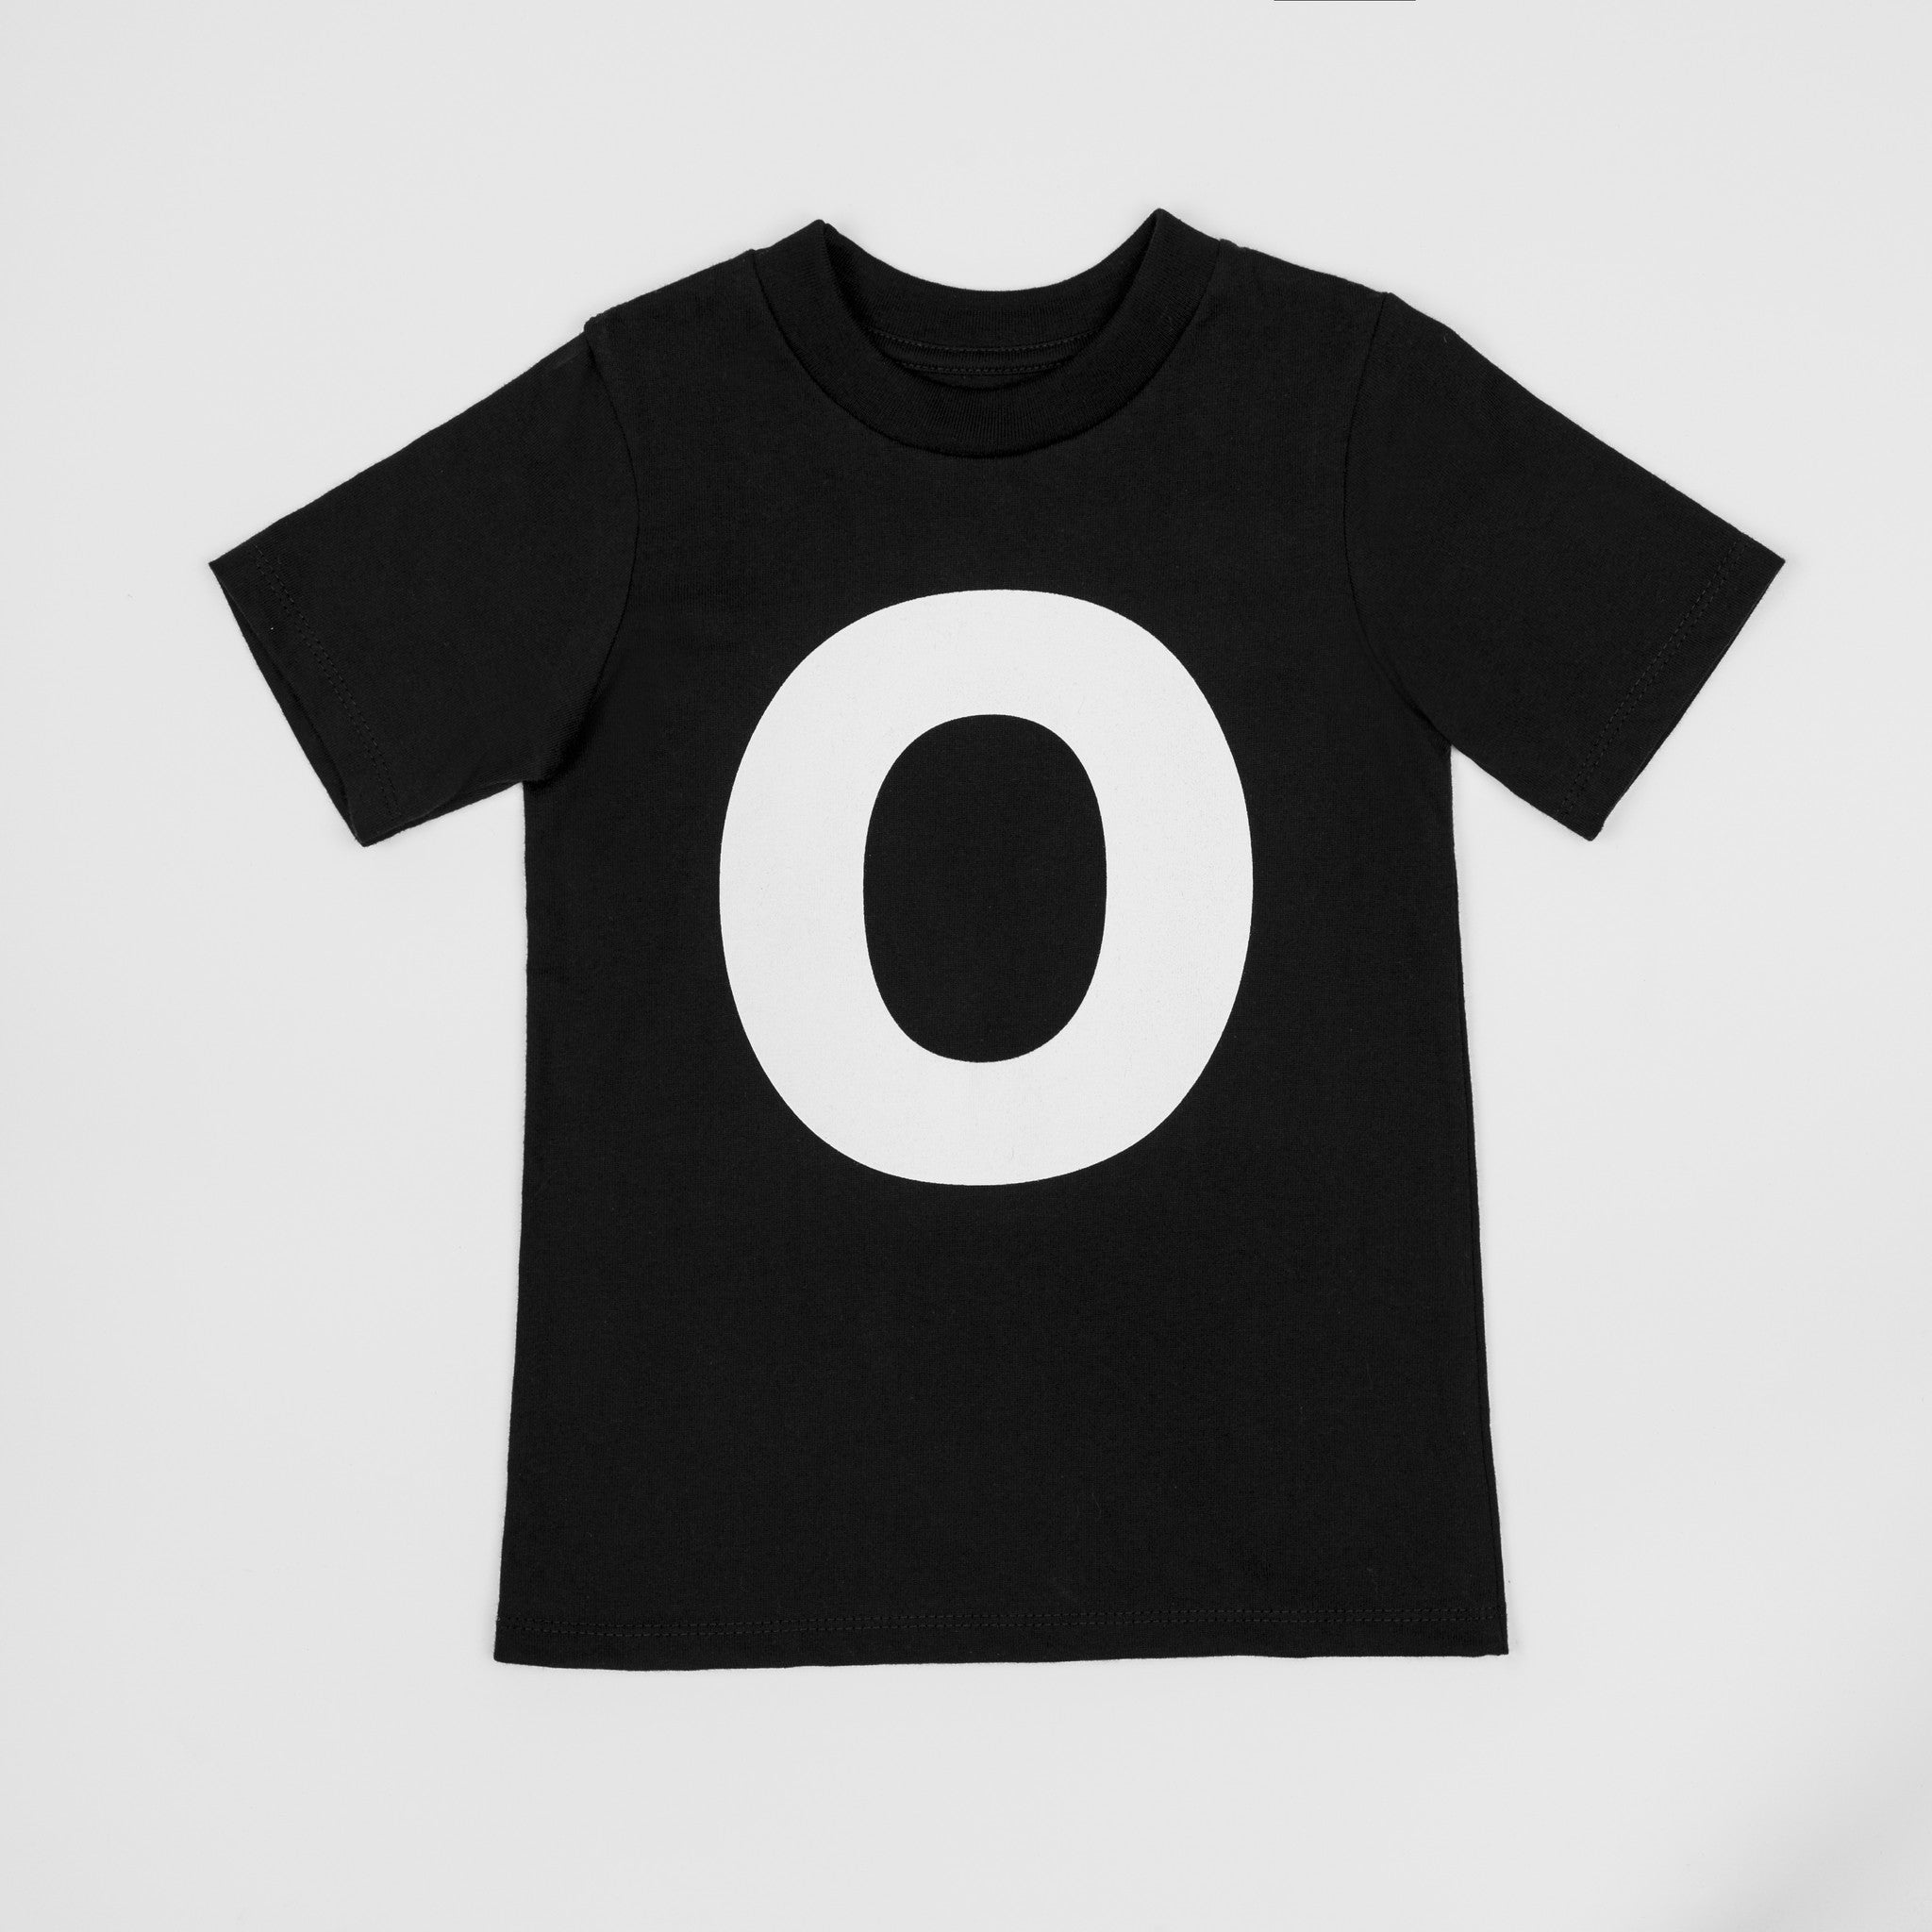 Letter O Black T Shirt With White Print Numbers And Letters